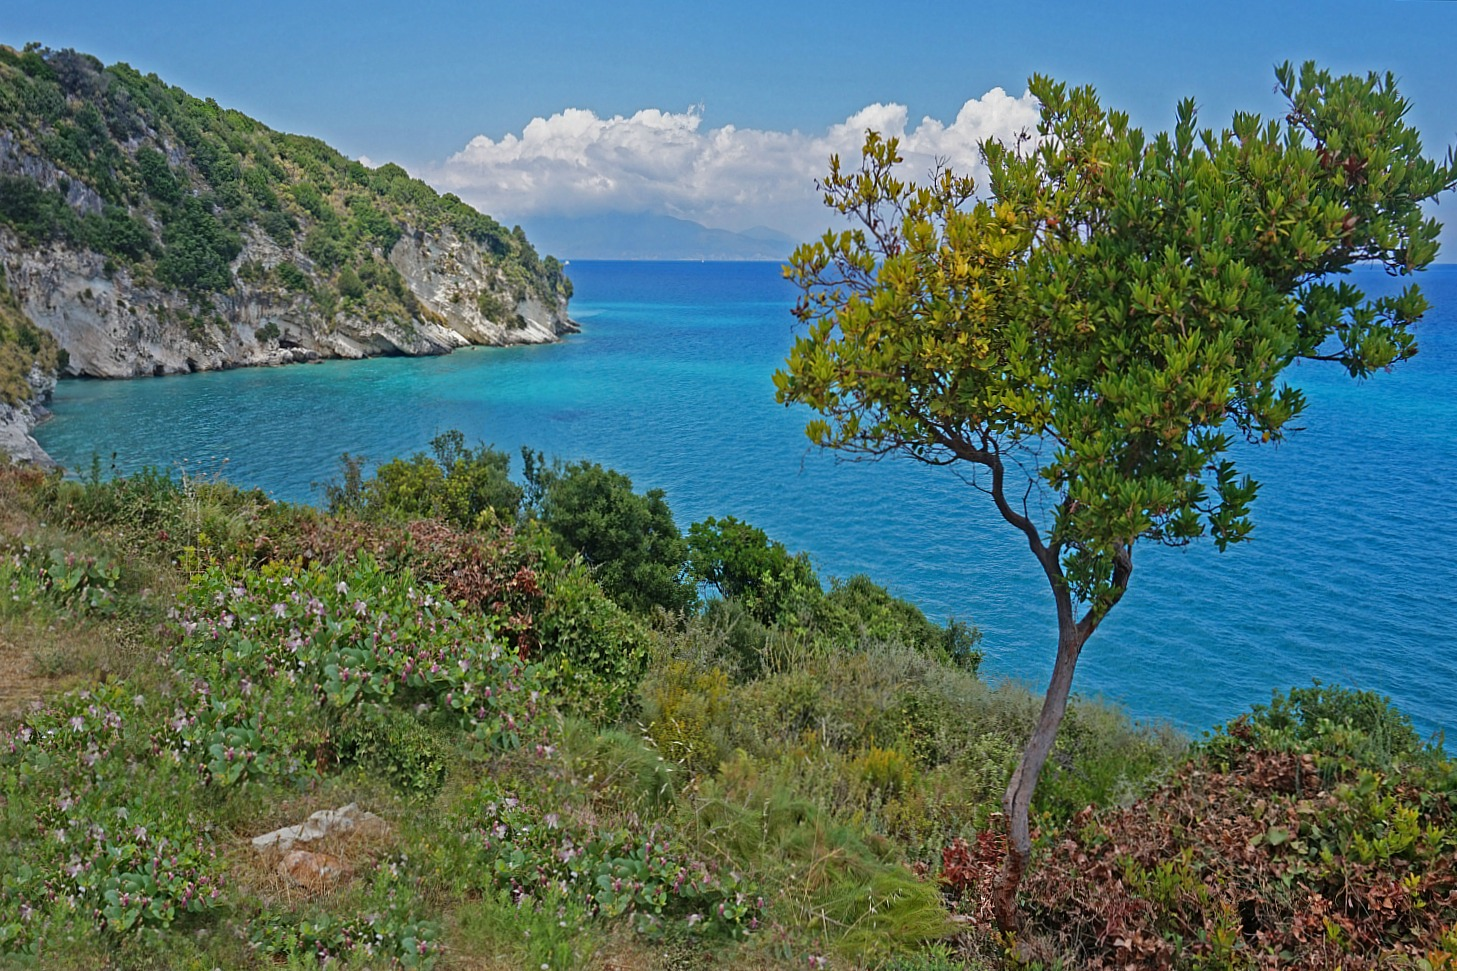 Zakynthos Greece - how to visit. Another beautiful view with tree.